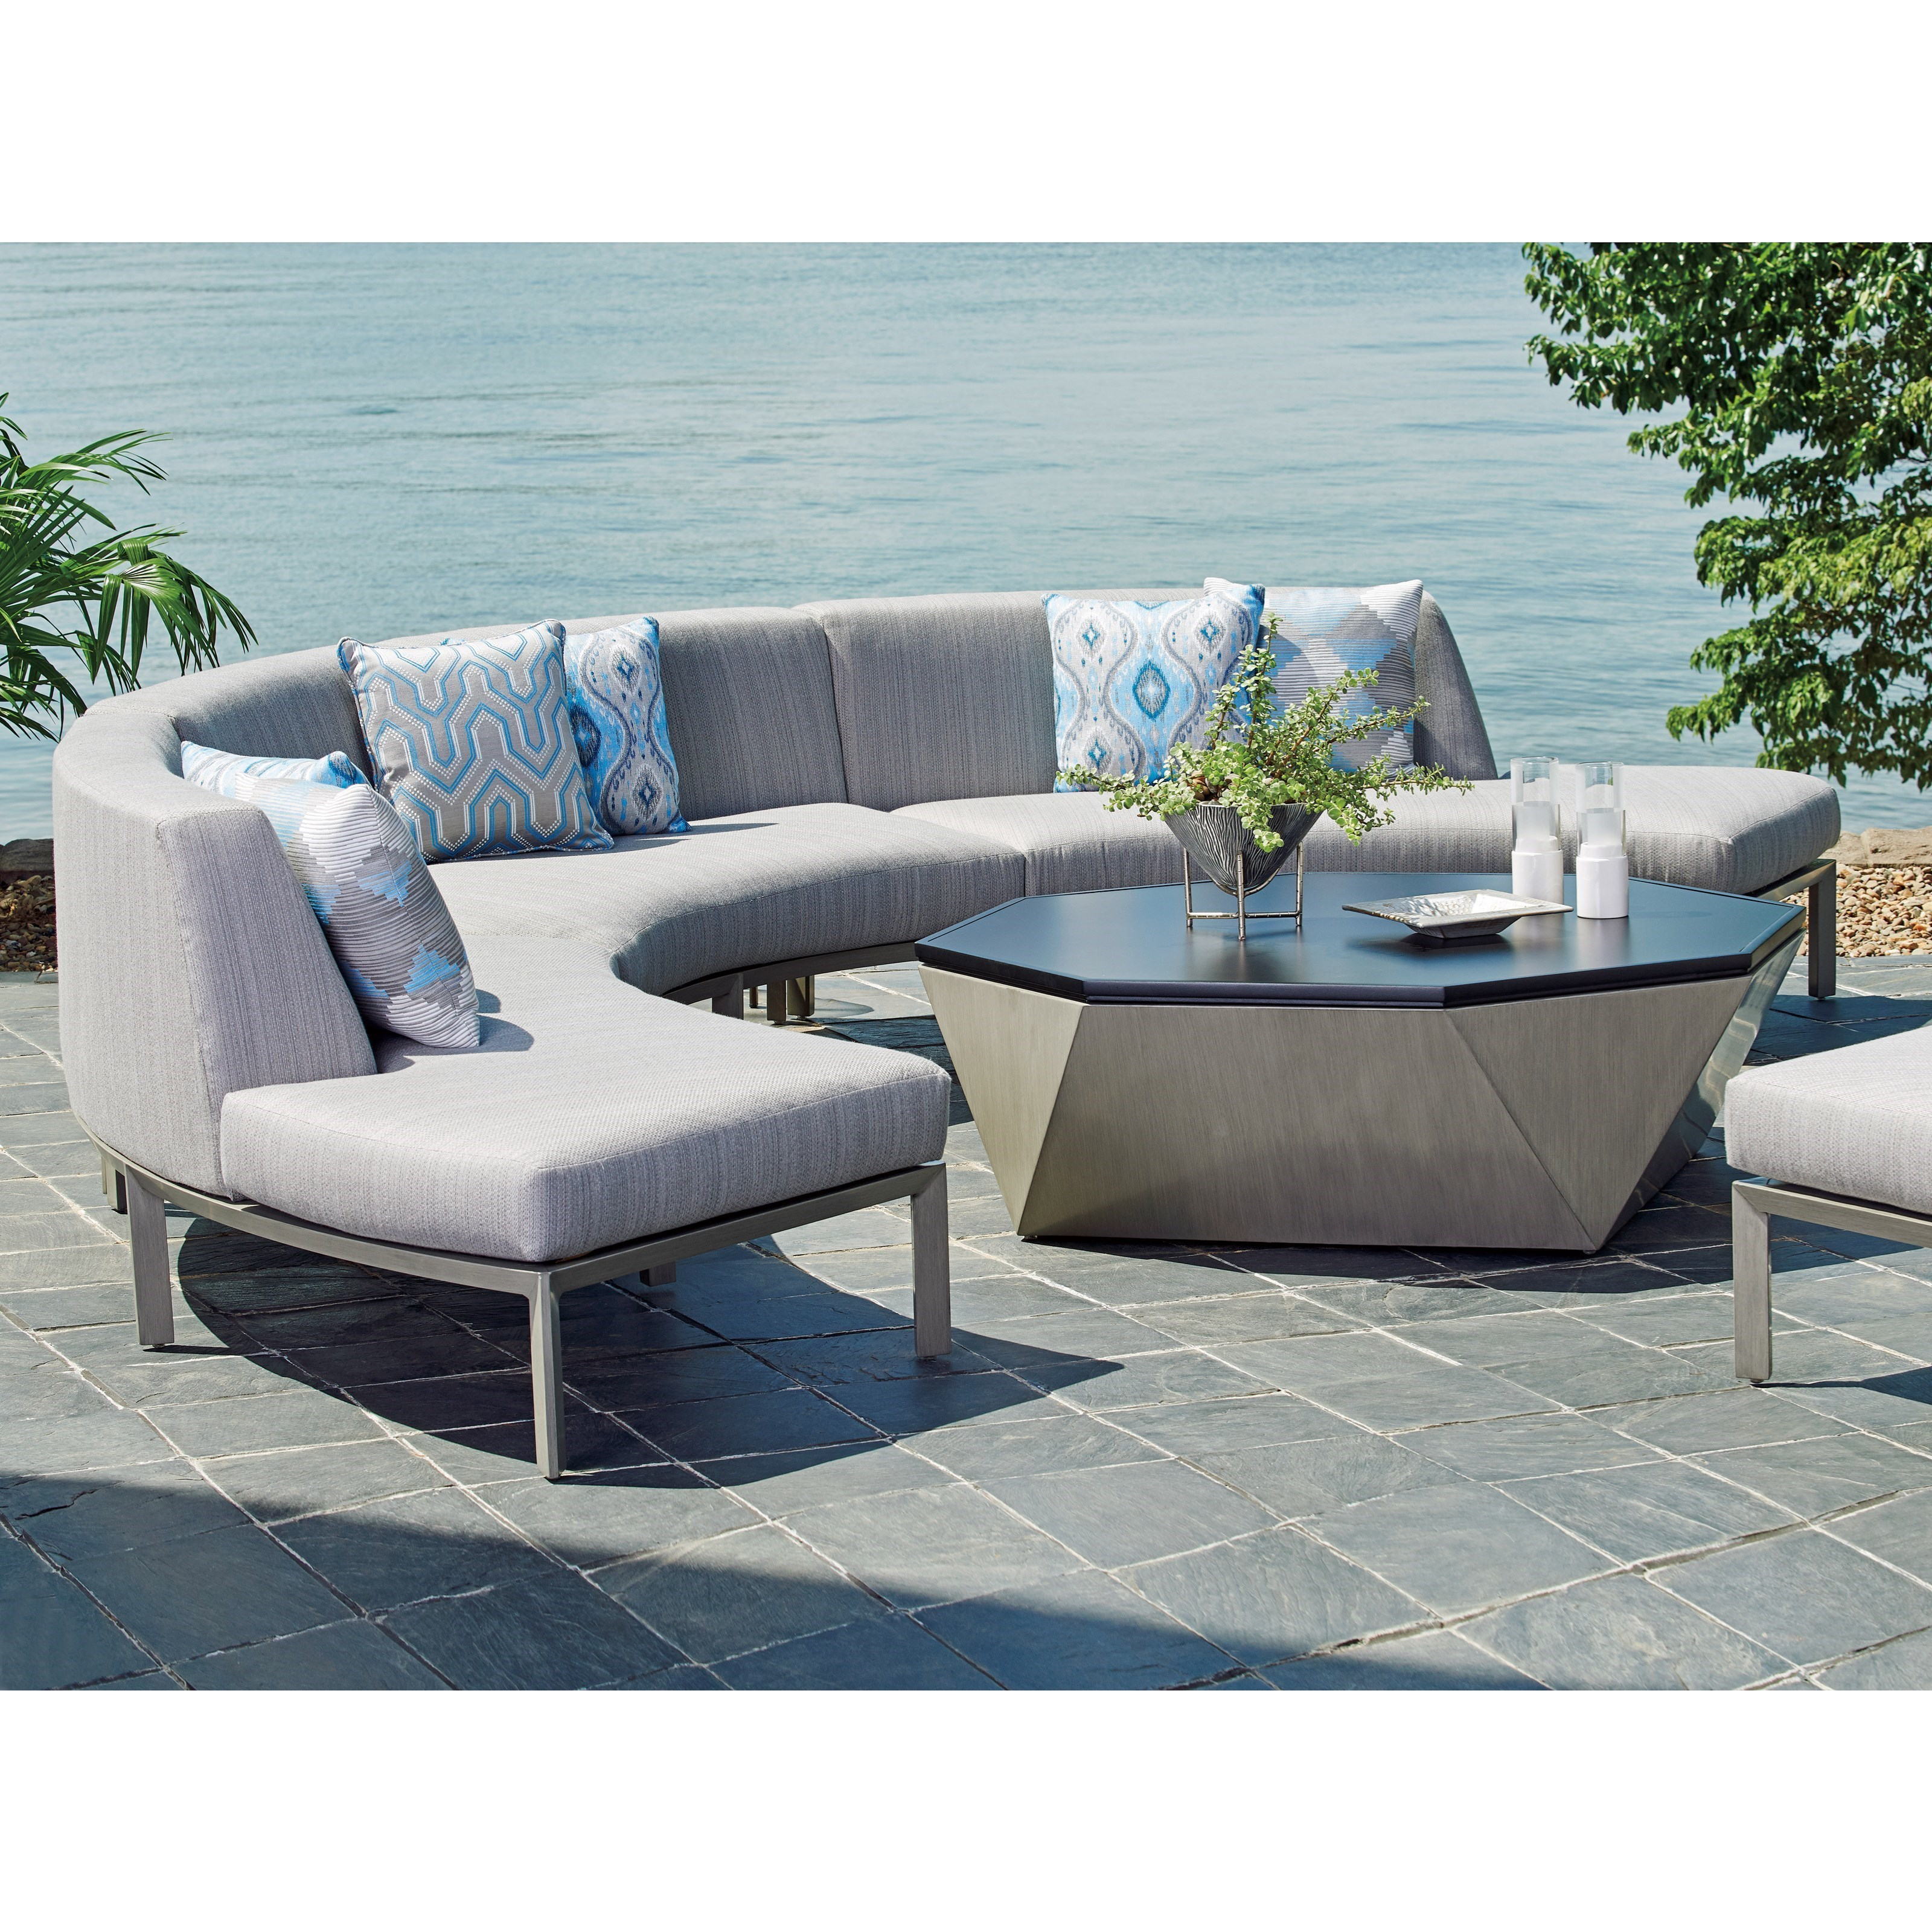 del mar custom sectional sofa best bed in dubai tommy bahama outdoor living three piece